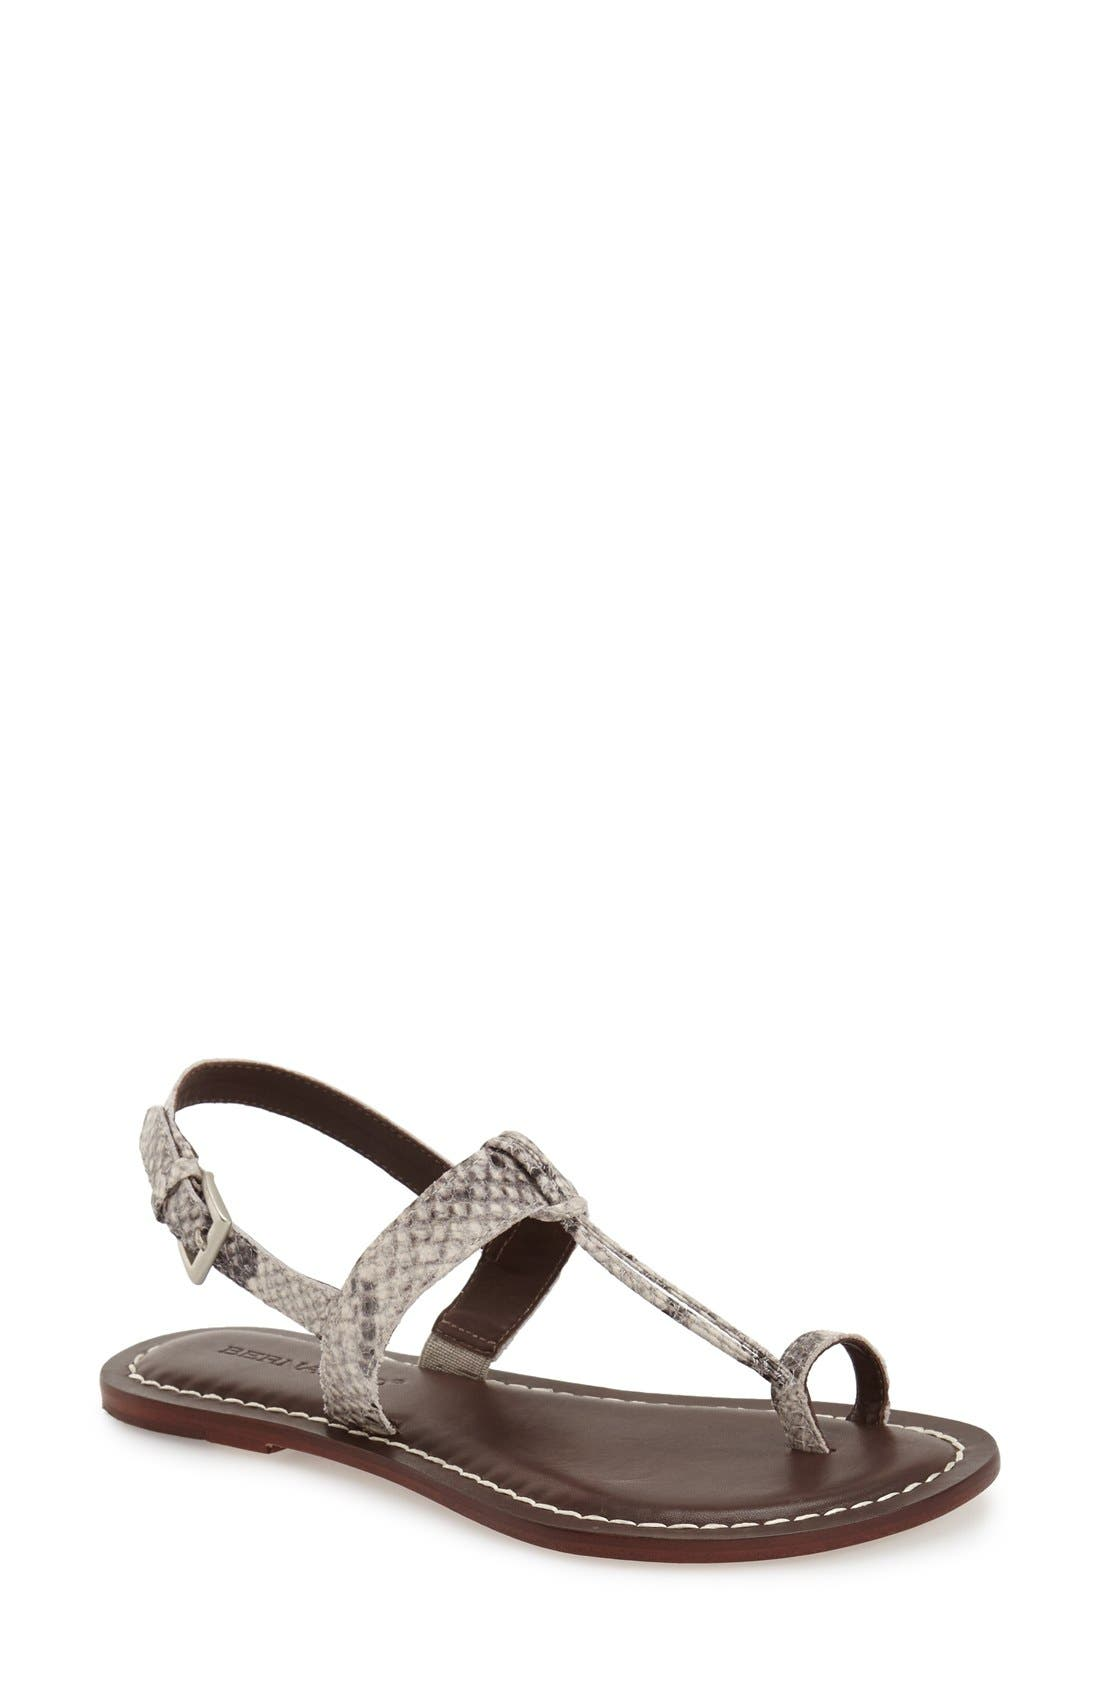 BERNARDO Maverick Leather Sandal